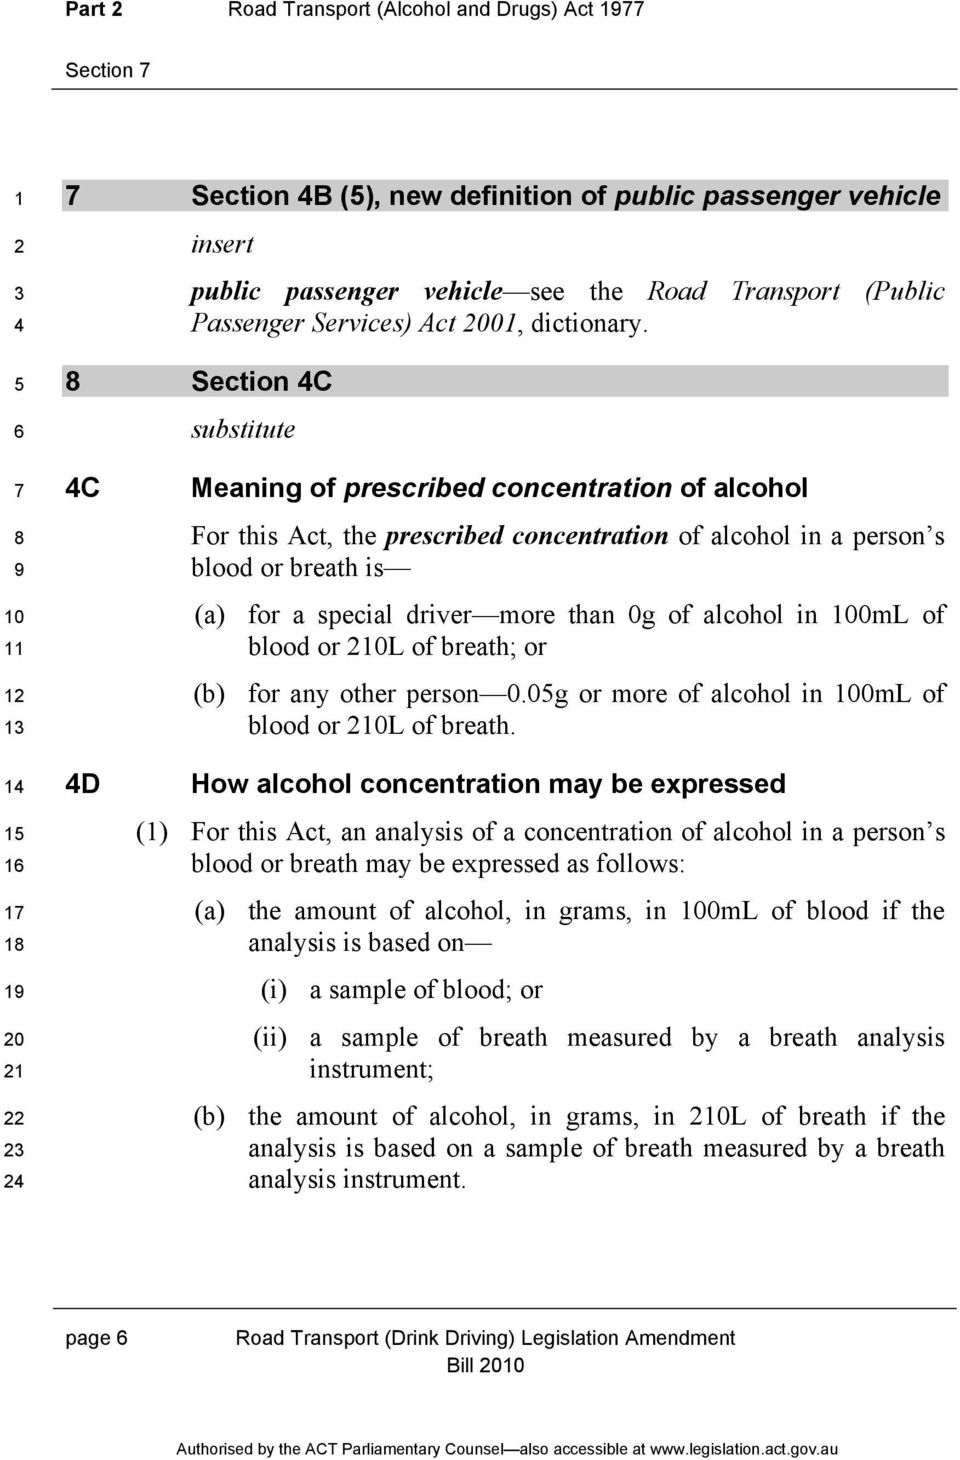 Section C 0 0 C D Meaning of prescribed concentration of alcohol For this Act, the prescribed concentration of alcohol in a person s blood or breath is (a) for a special driver more than 0g of